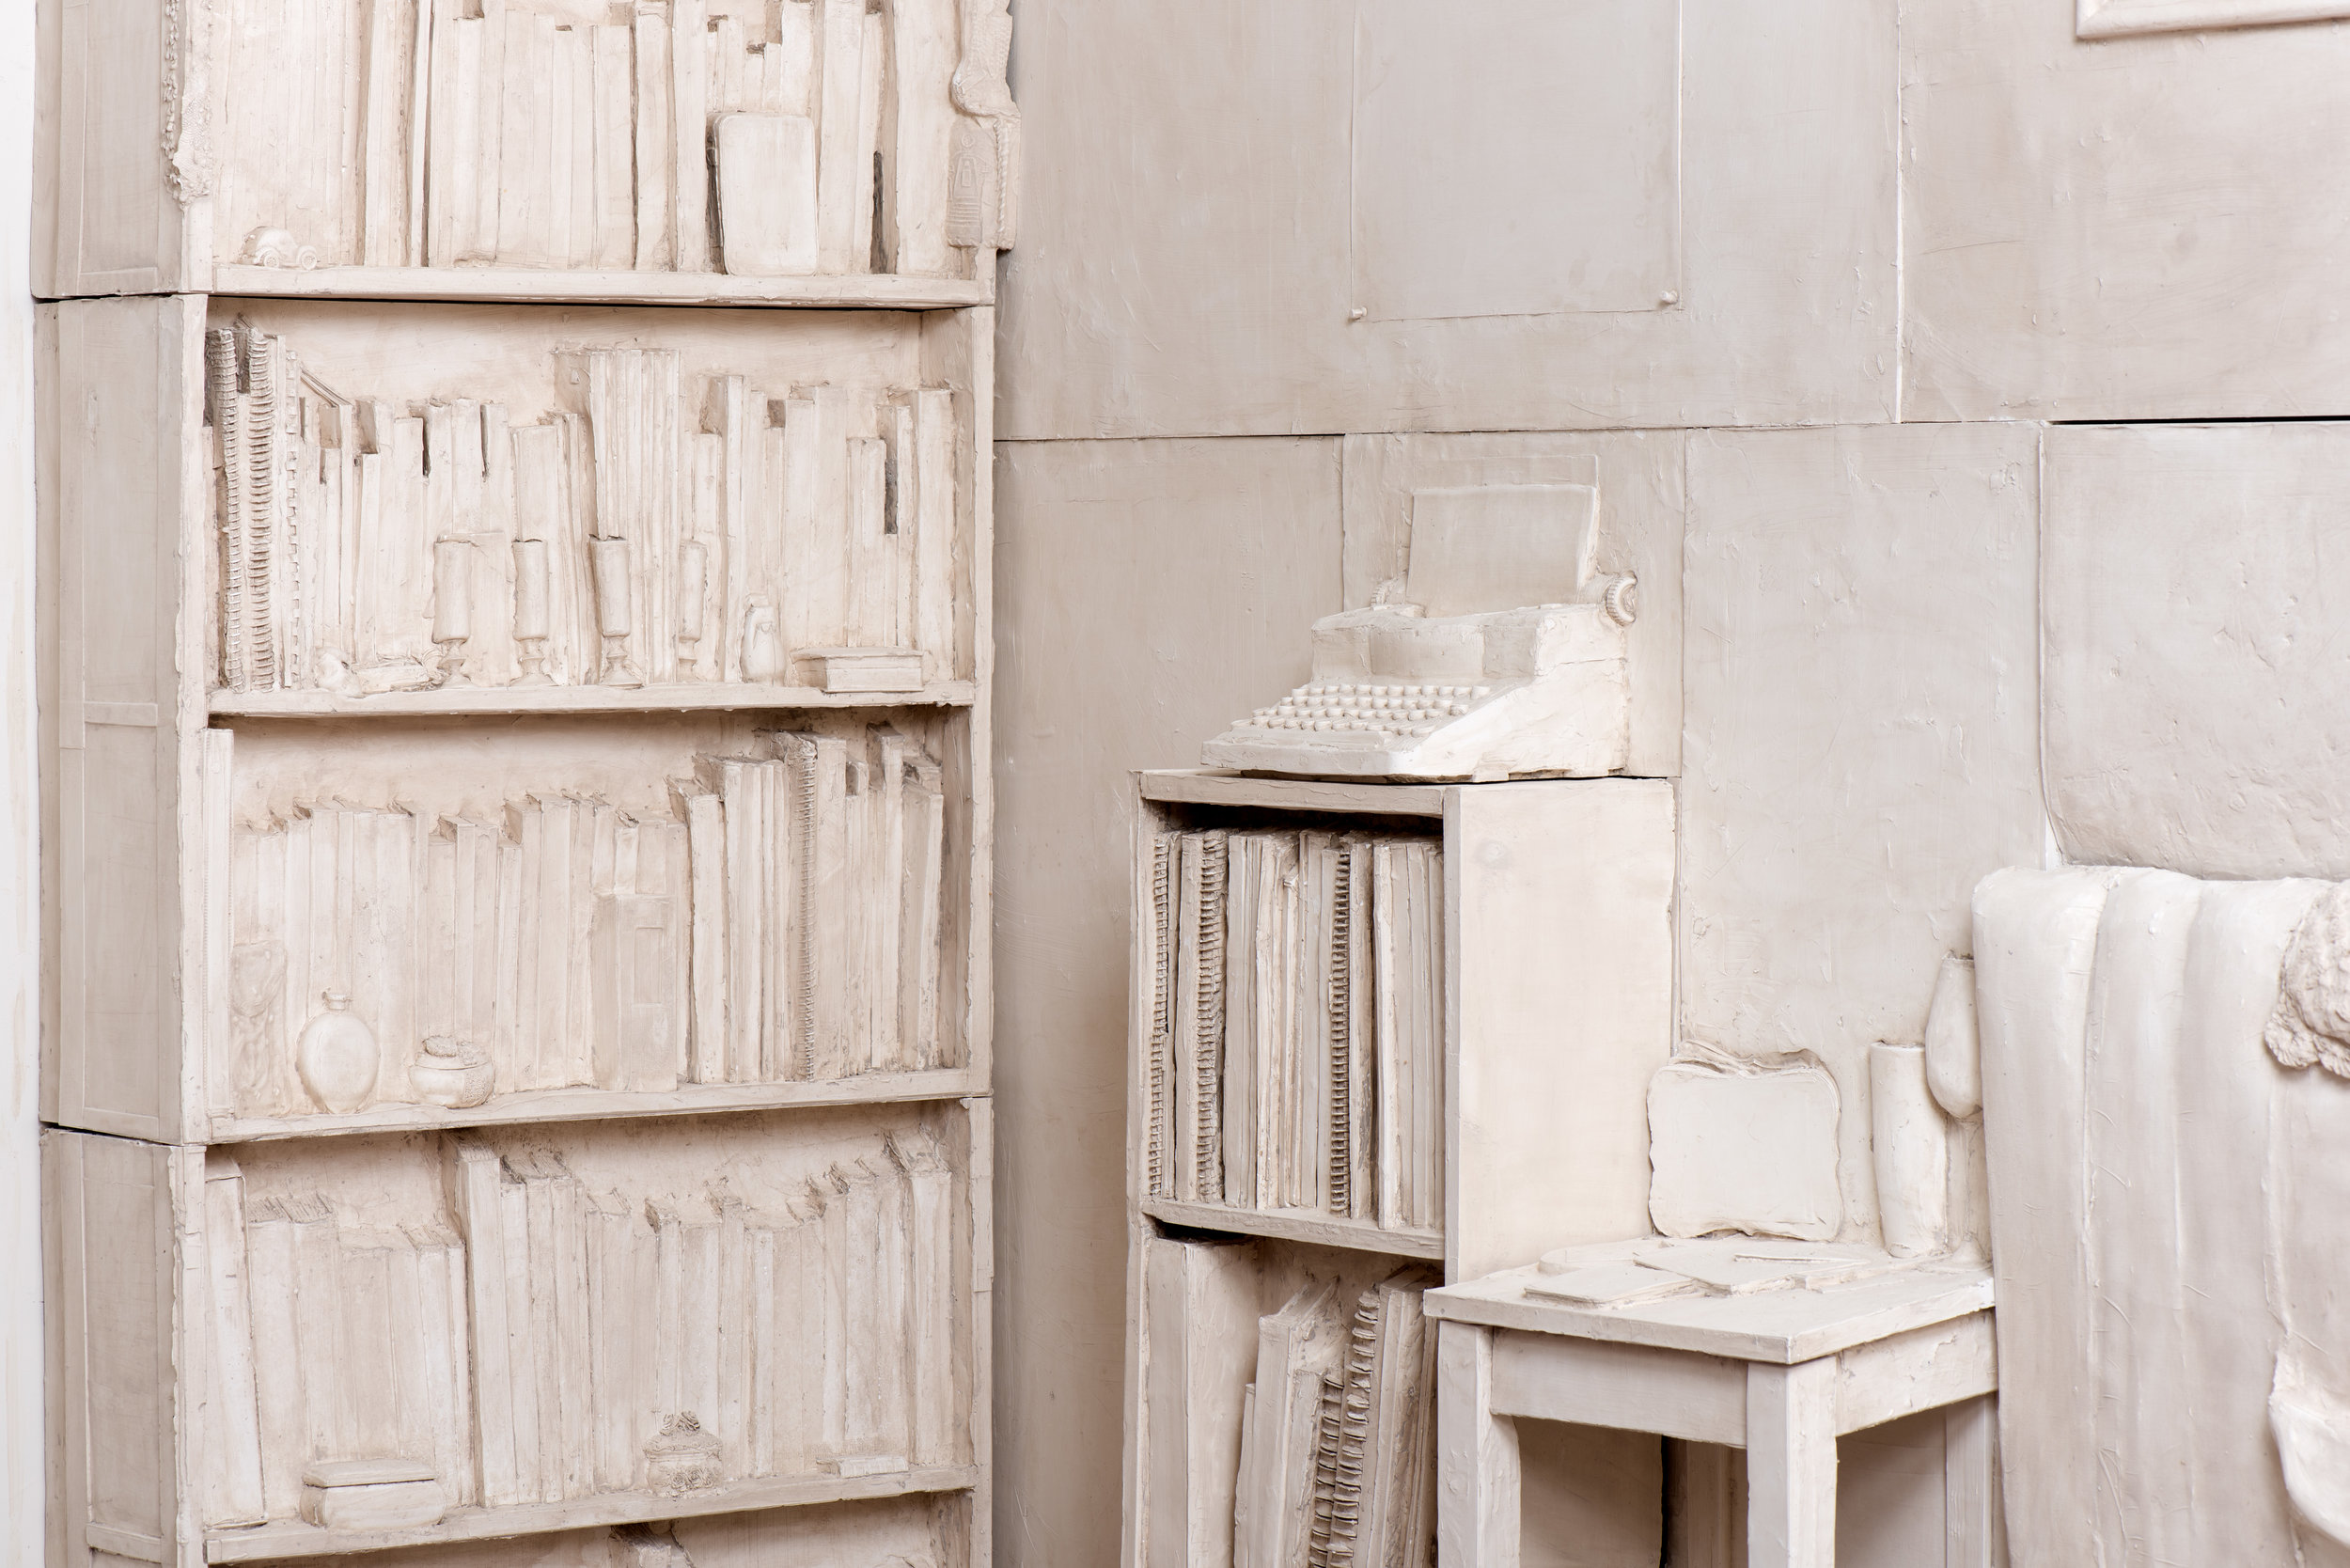 Live/Work  (detail), 2019 Gypsum cement, burlap, and wood 96 x 192 x 36 inches